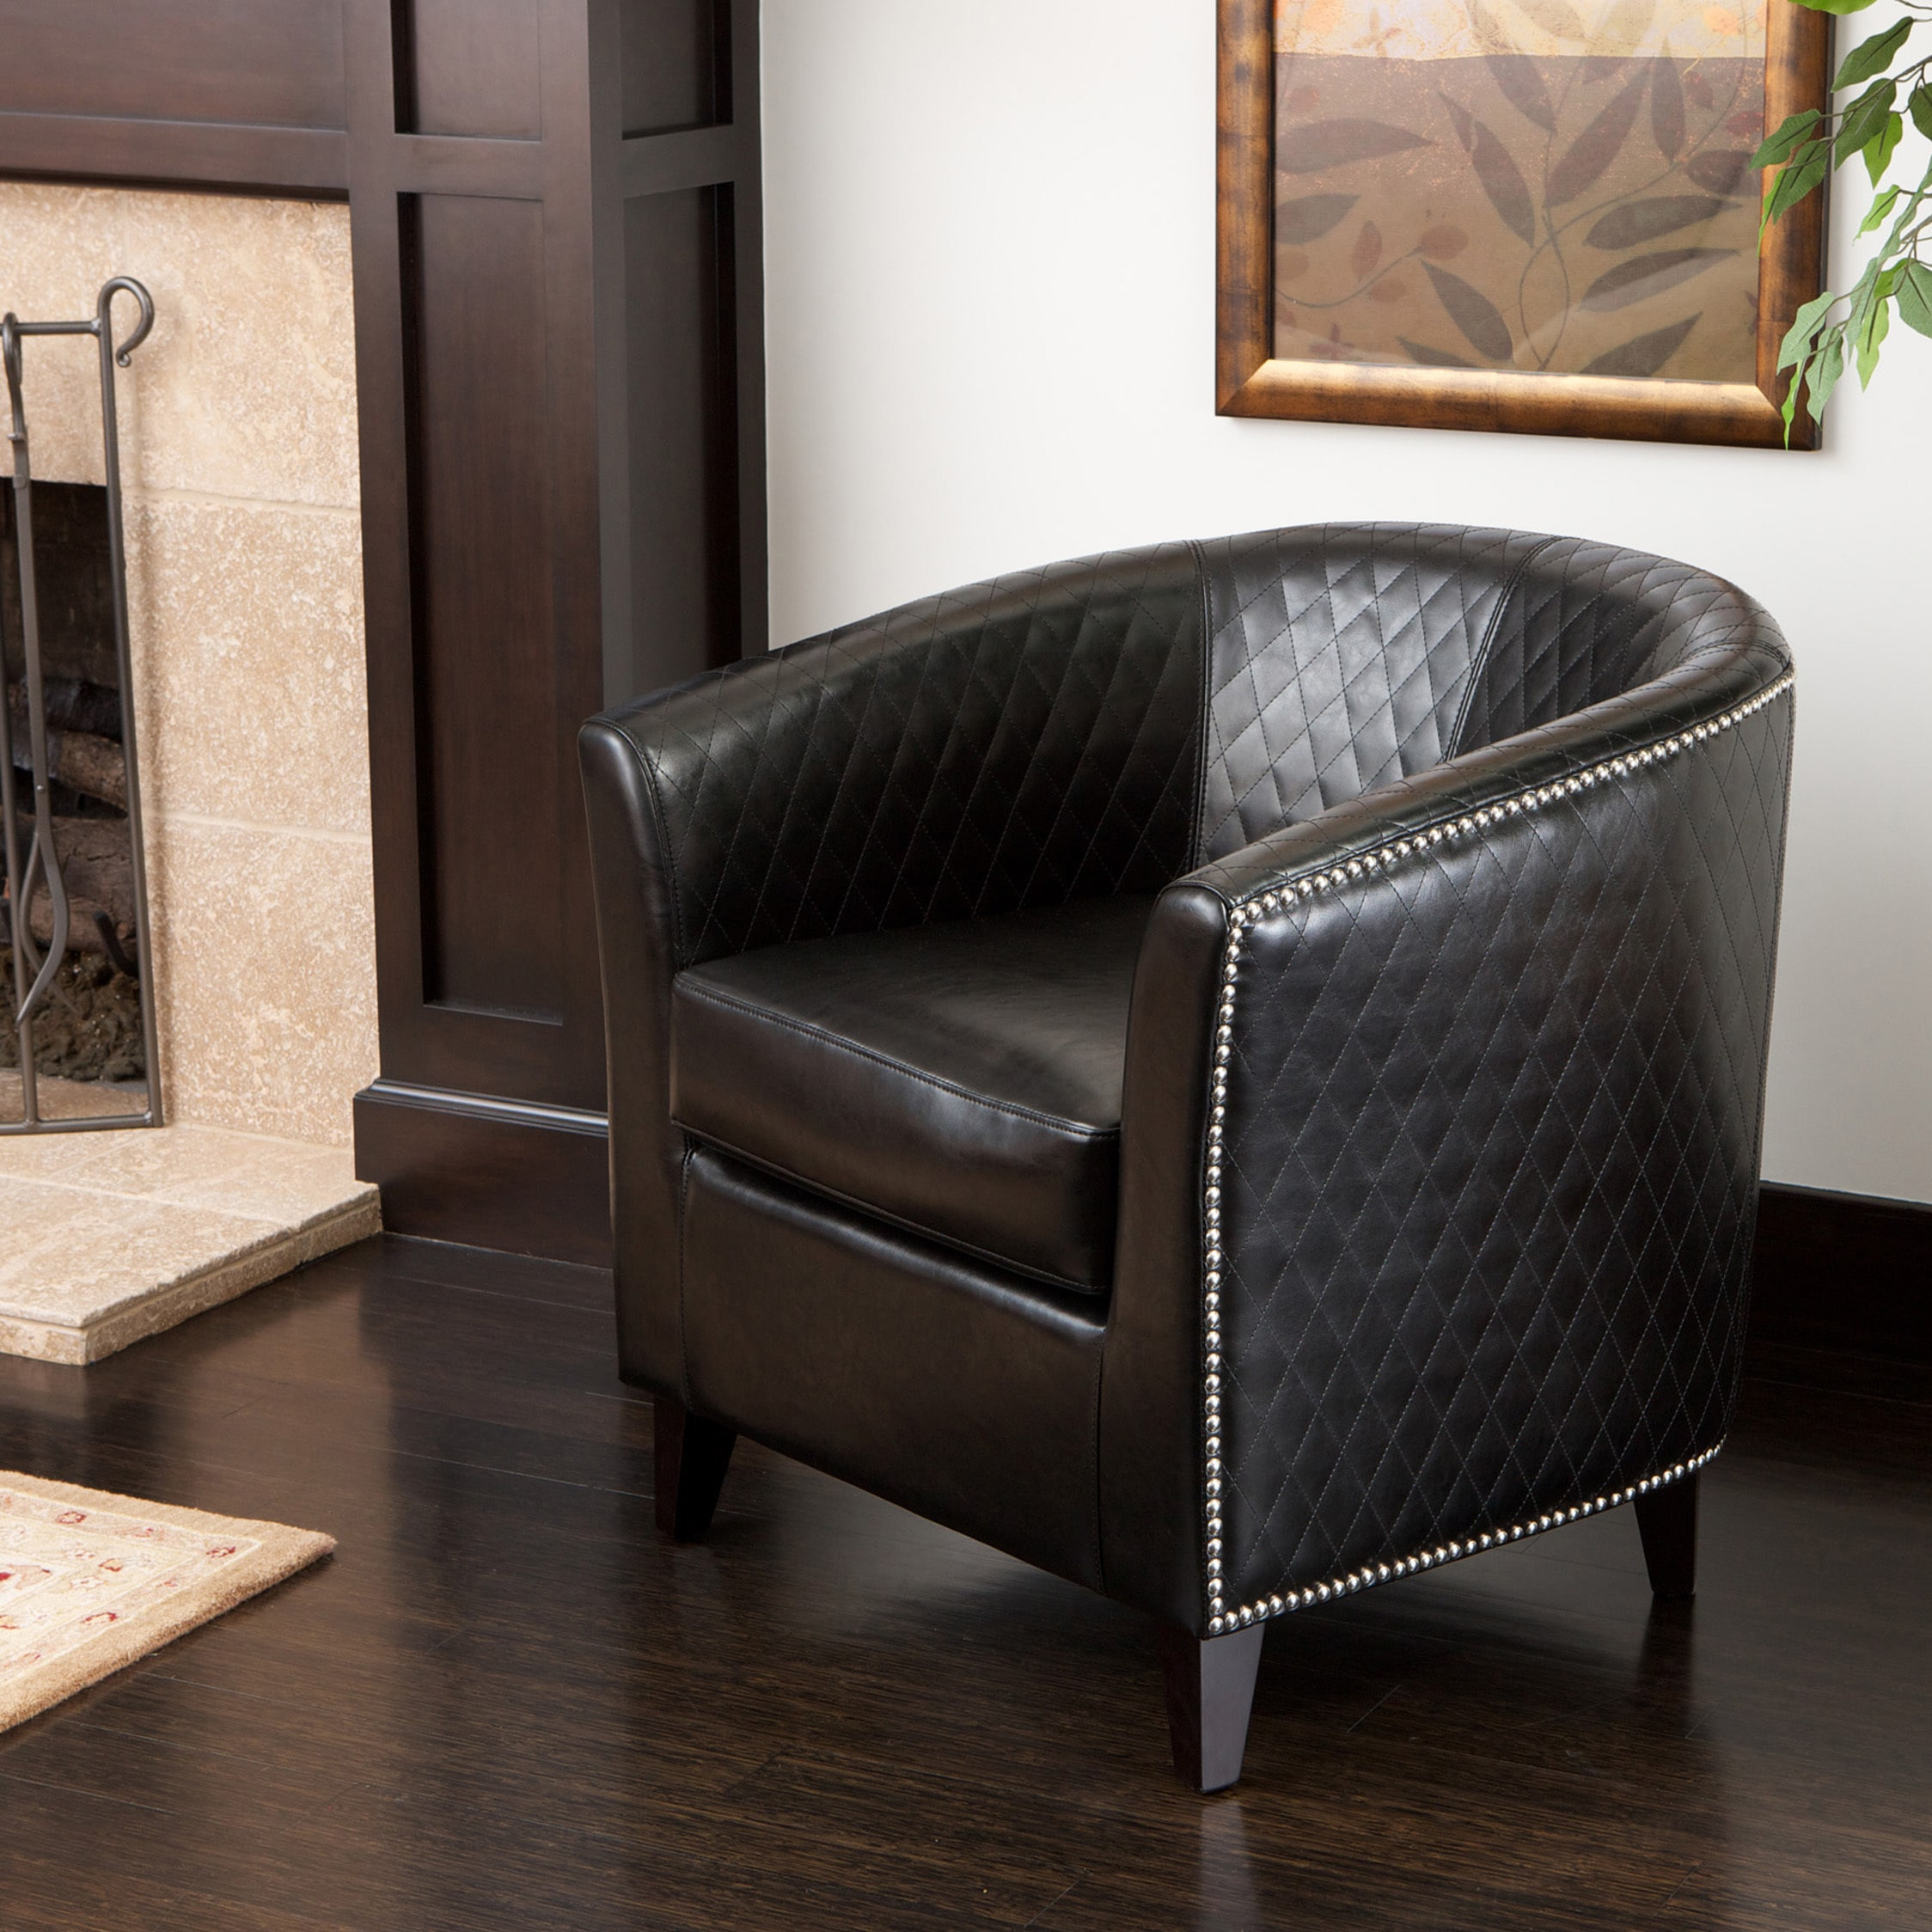 Christopher Knight Home Mia Black Bonded Leather Quilted Club Chair & Buy Club Chairs Black Living Room Chairs Online at Overstock.com ...